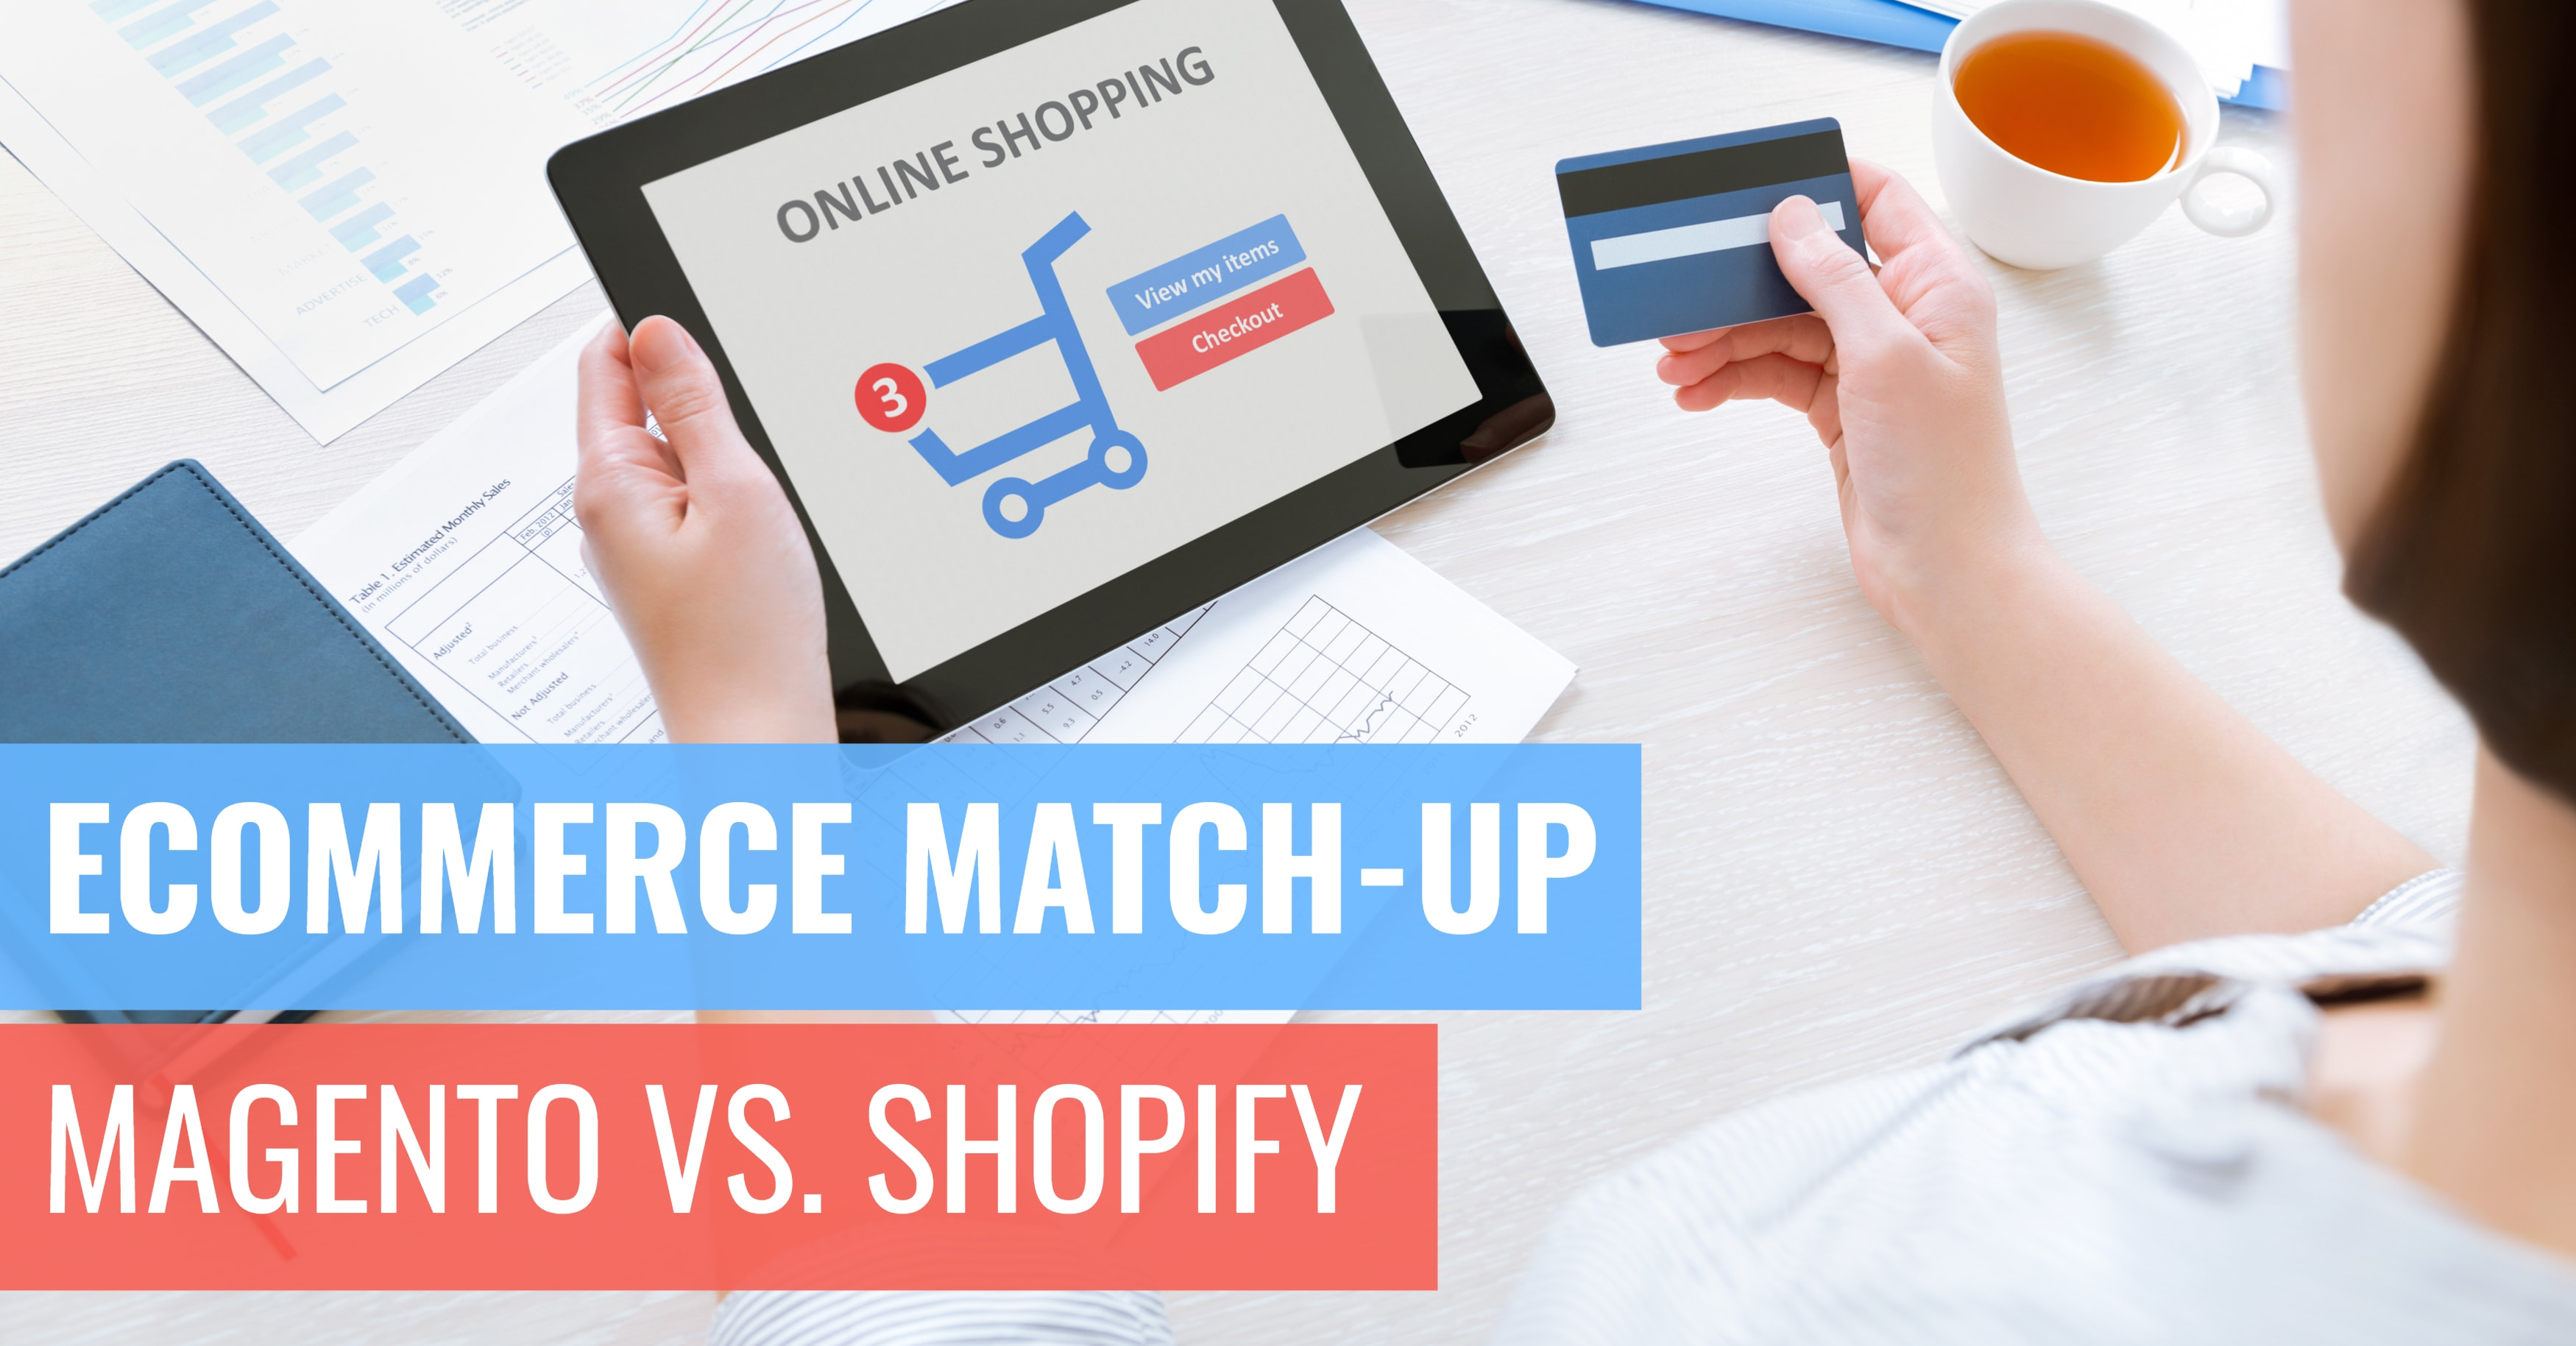 eCommerce Match-Up: Magento vs. Shopify